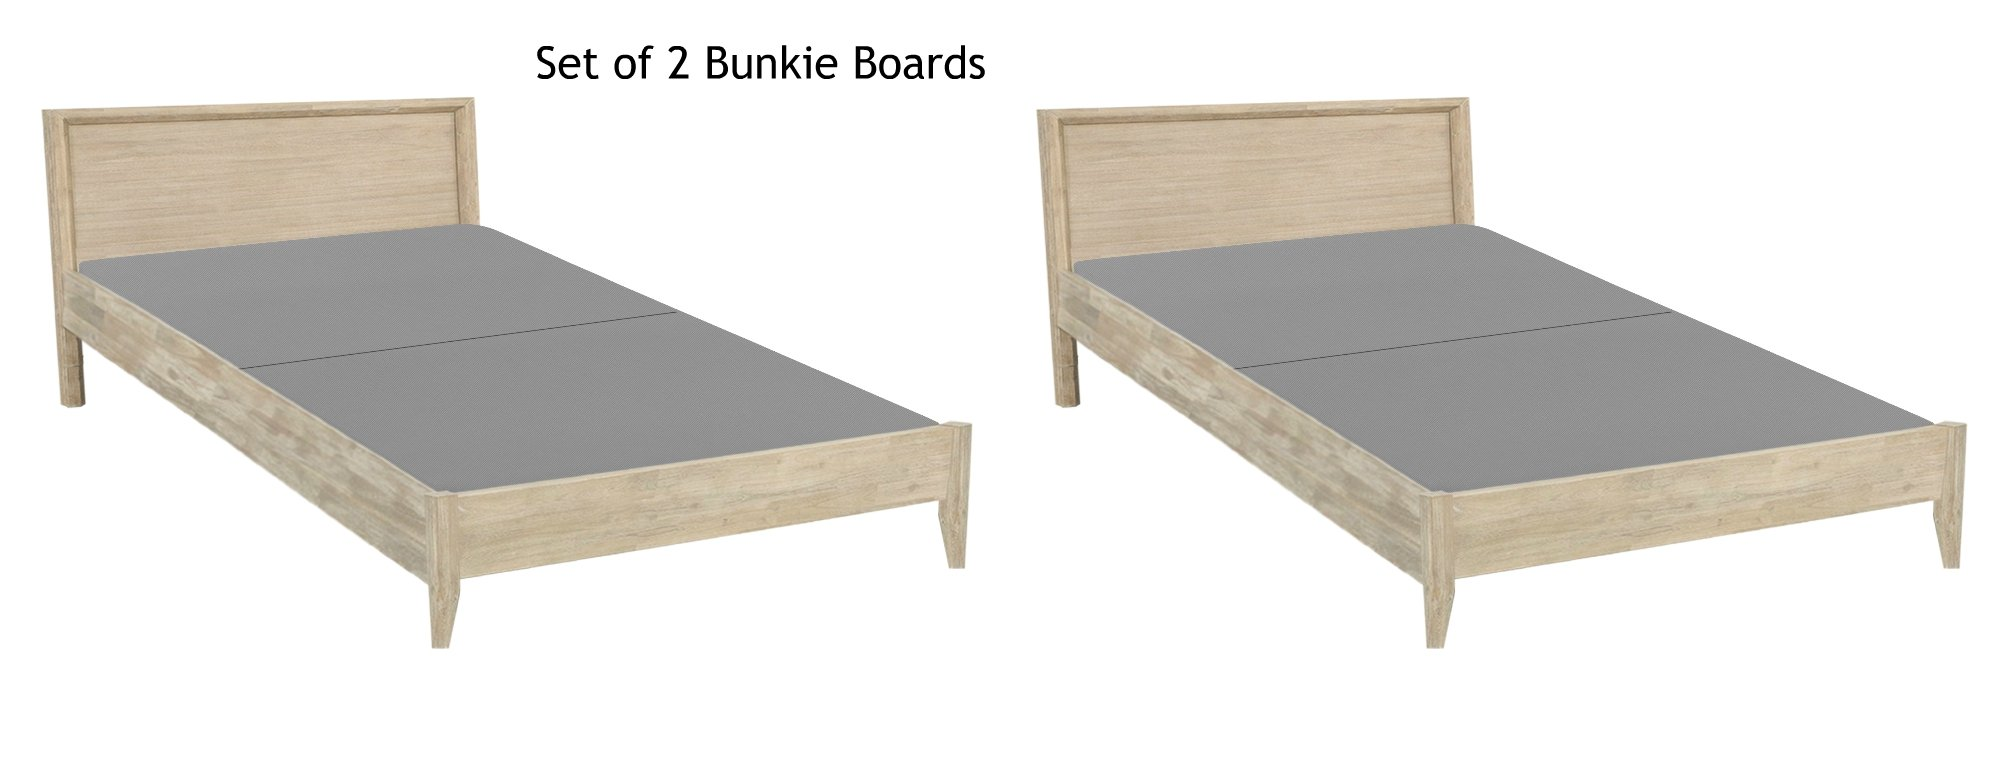 Continental Sleep, Fully Assembled Split 2'' Foundation Bunkie Board, Set of 2 |Twin Size| (4 halves Included)